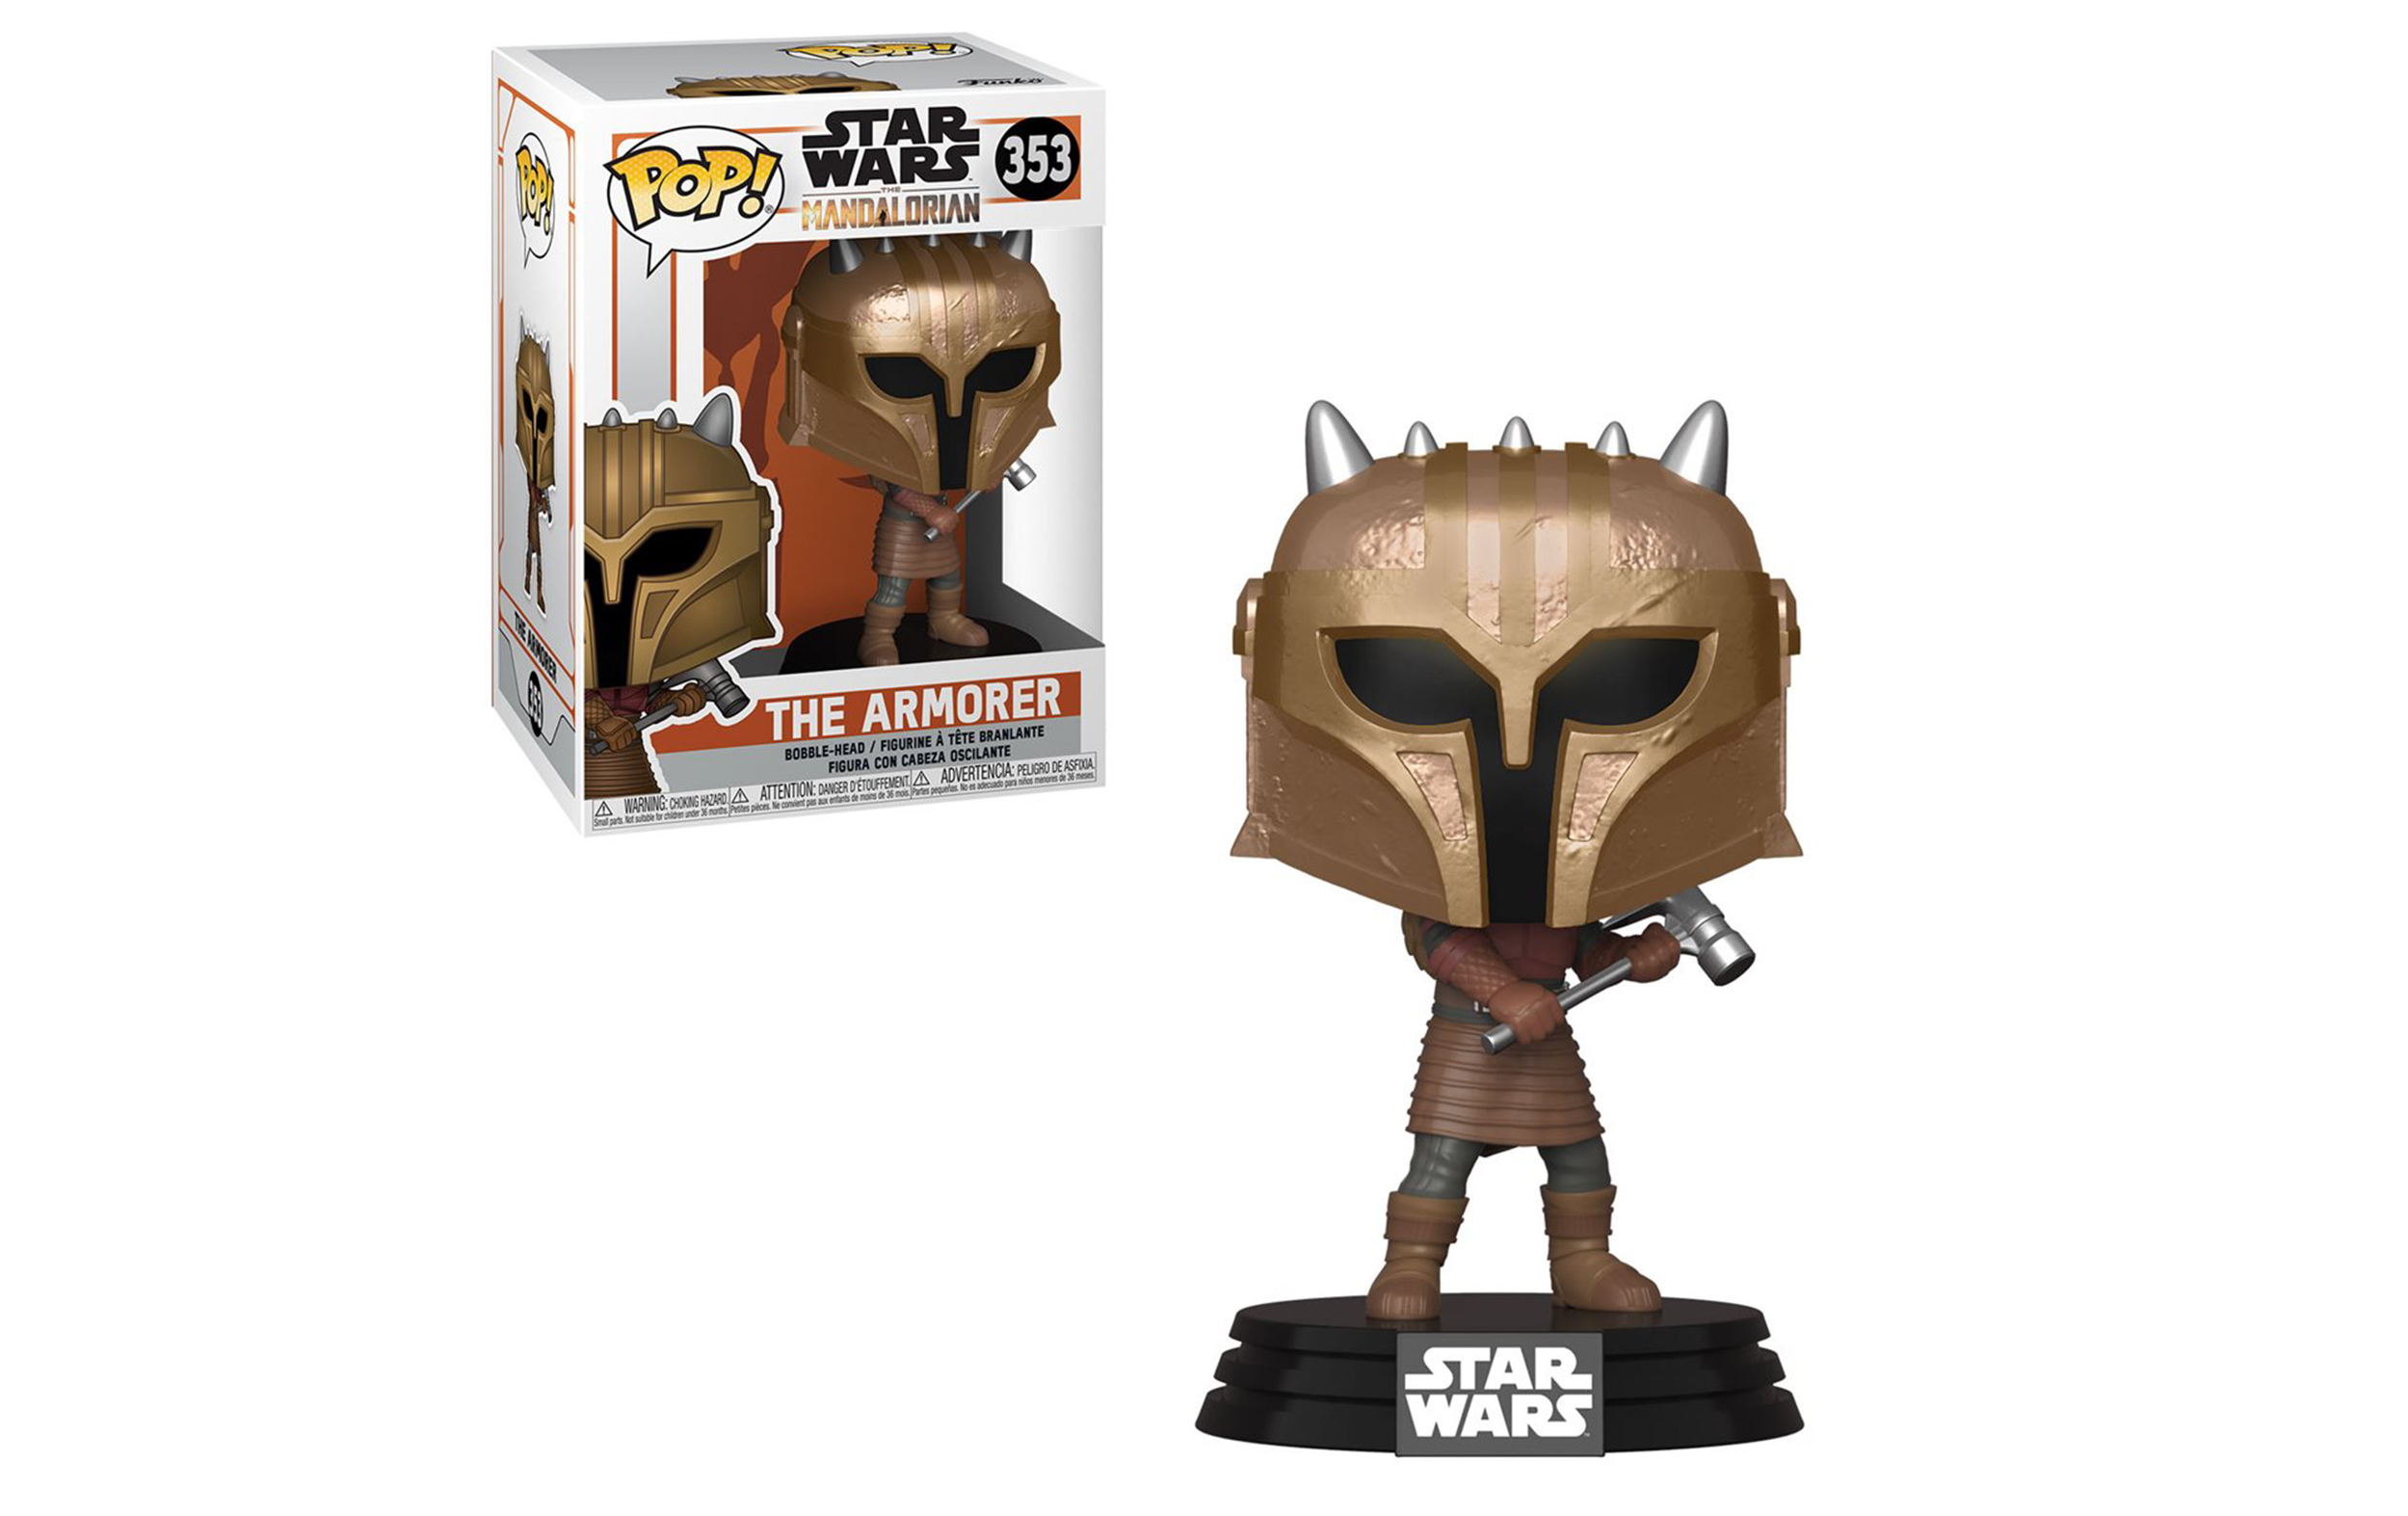 Star Wars The MandalorianThe Armorer 353 Funko POP Vinyl Figure